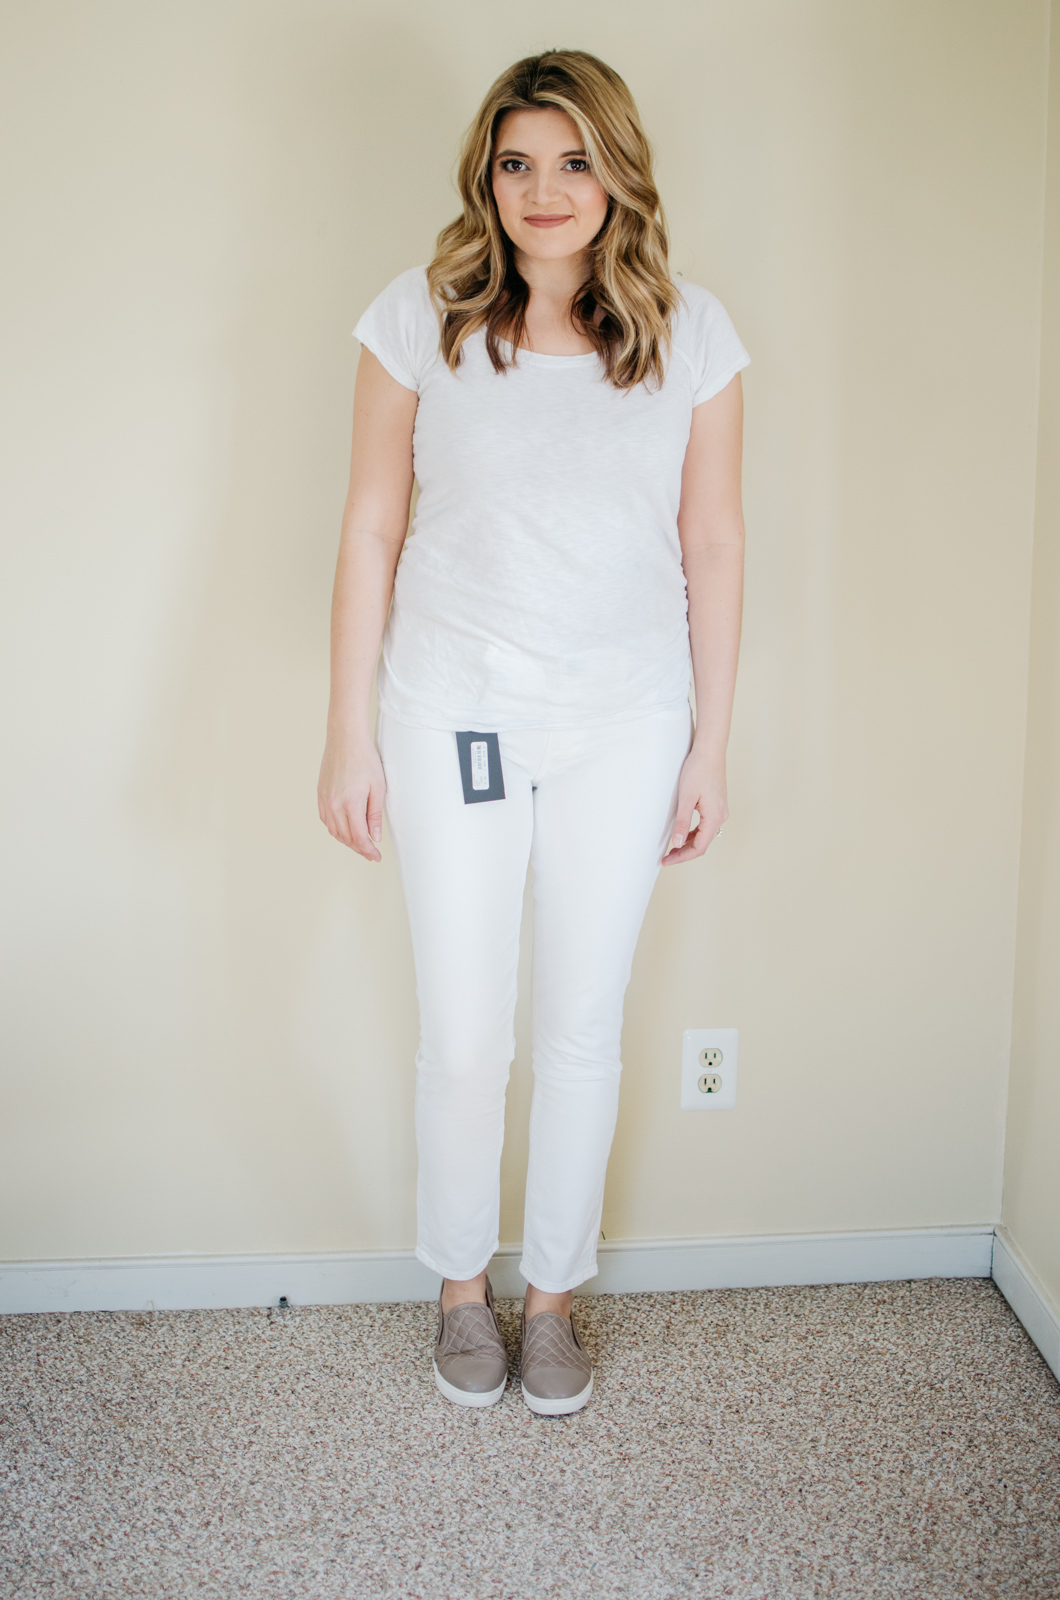 Paige skyline maternity jeans review - best maternity jeans | See reviews of over 15 maternity jeans brands by clicking through to this post! | bylaurenm.com